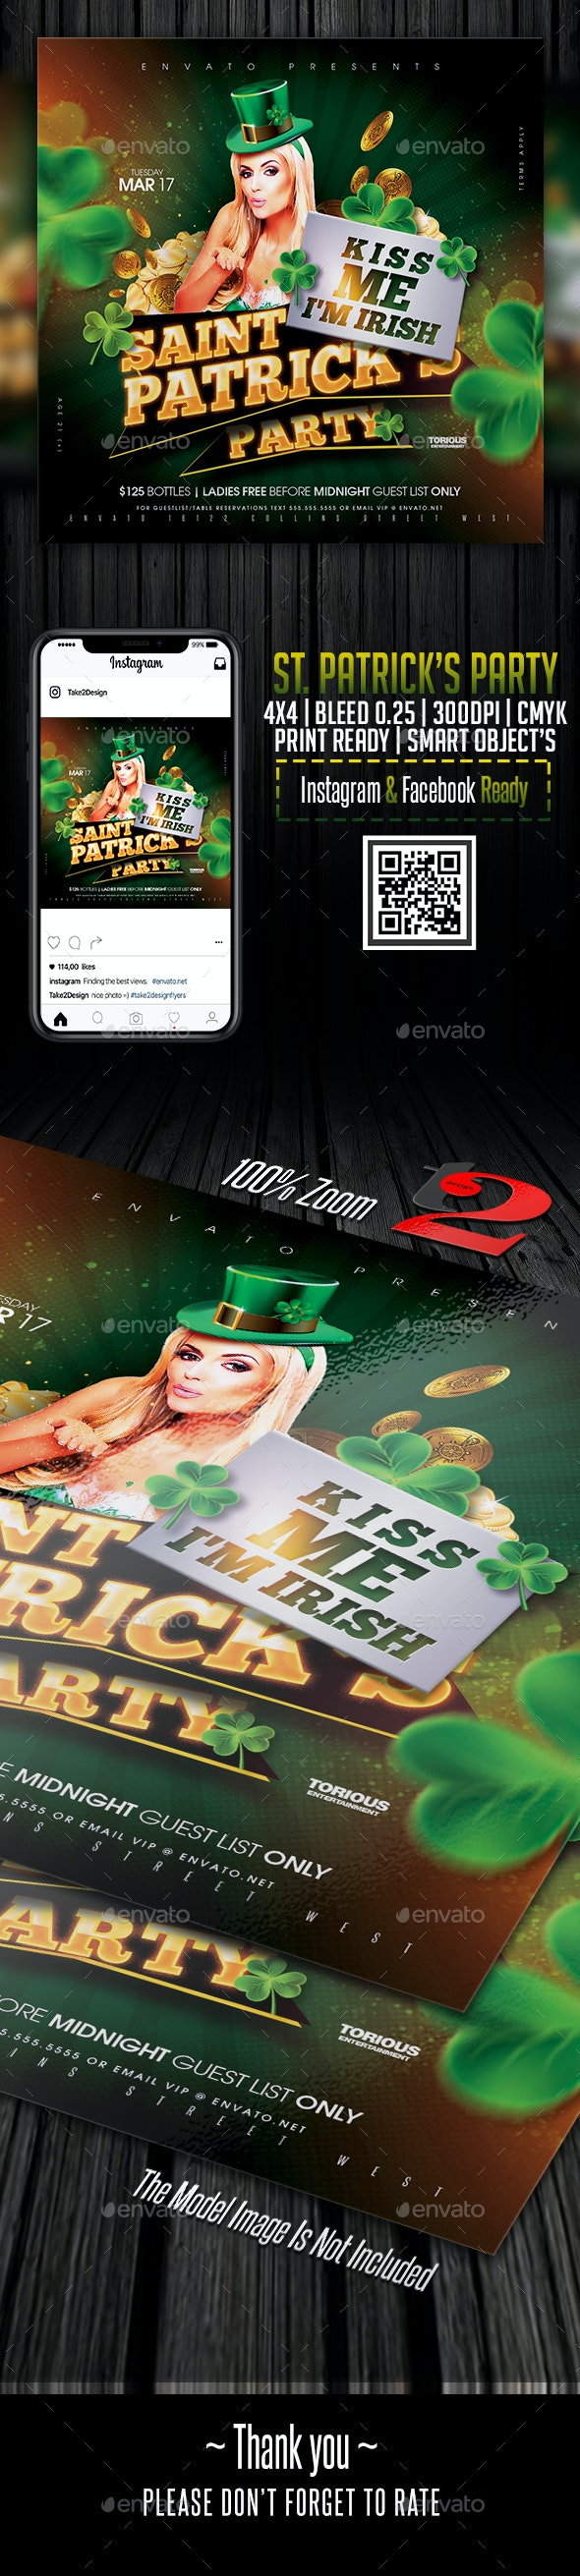 St. Patrick's Party Flyer Template - Clubs & Parties Events